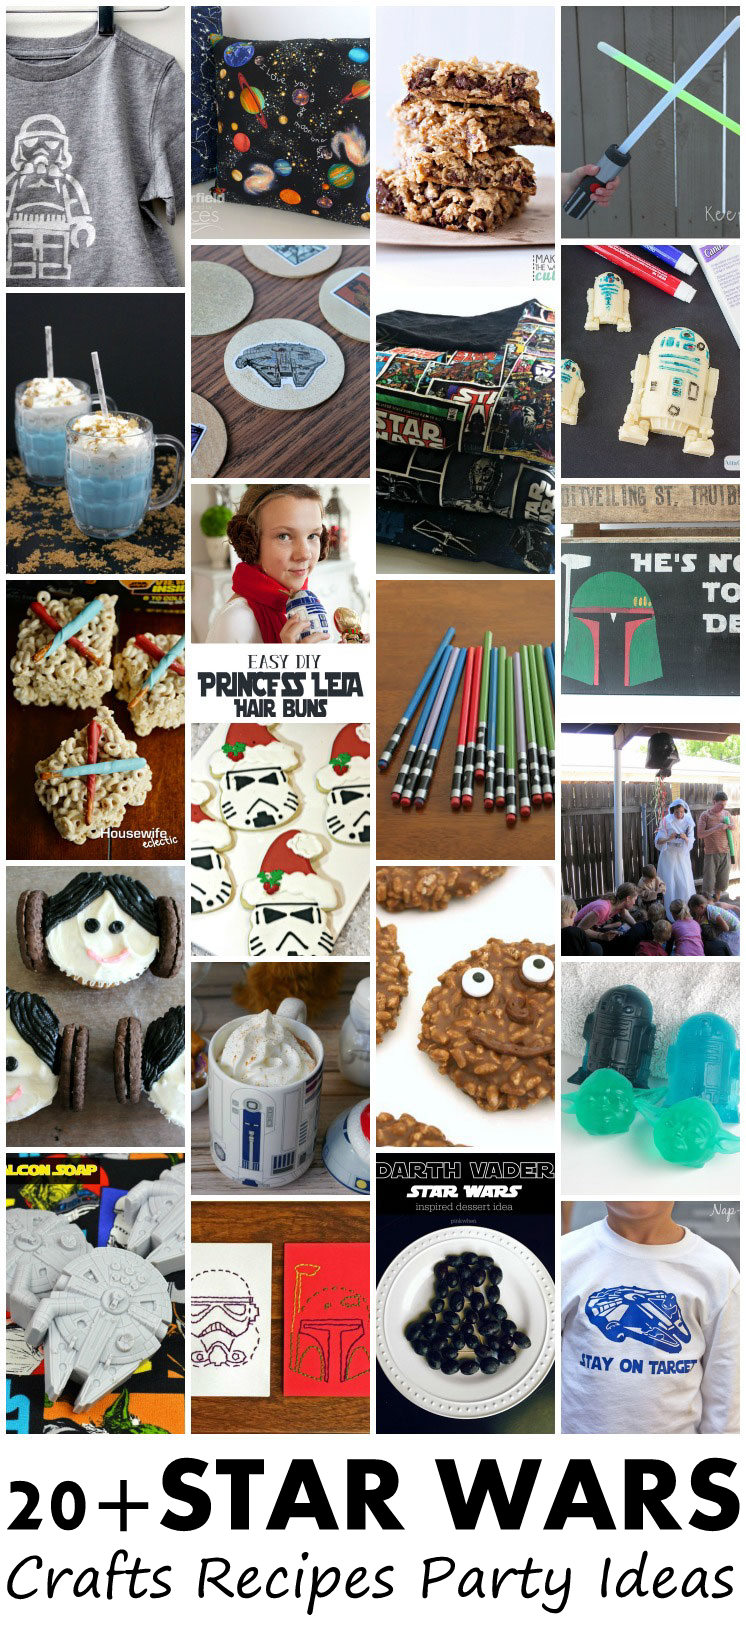 Over 20 awesome Star Wars DIY tutorials, craft projects, recipes and party ideas